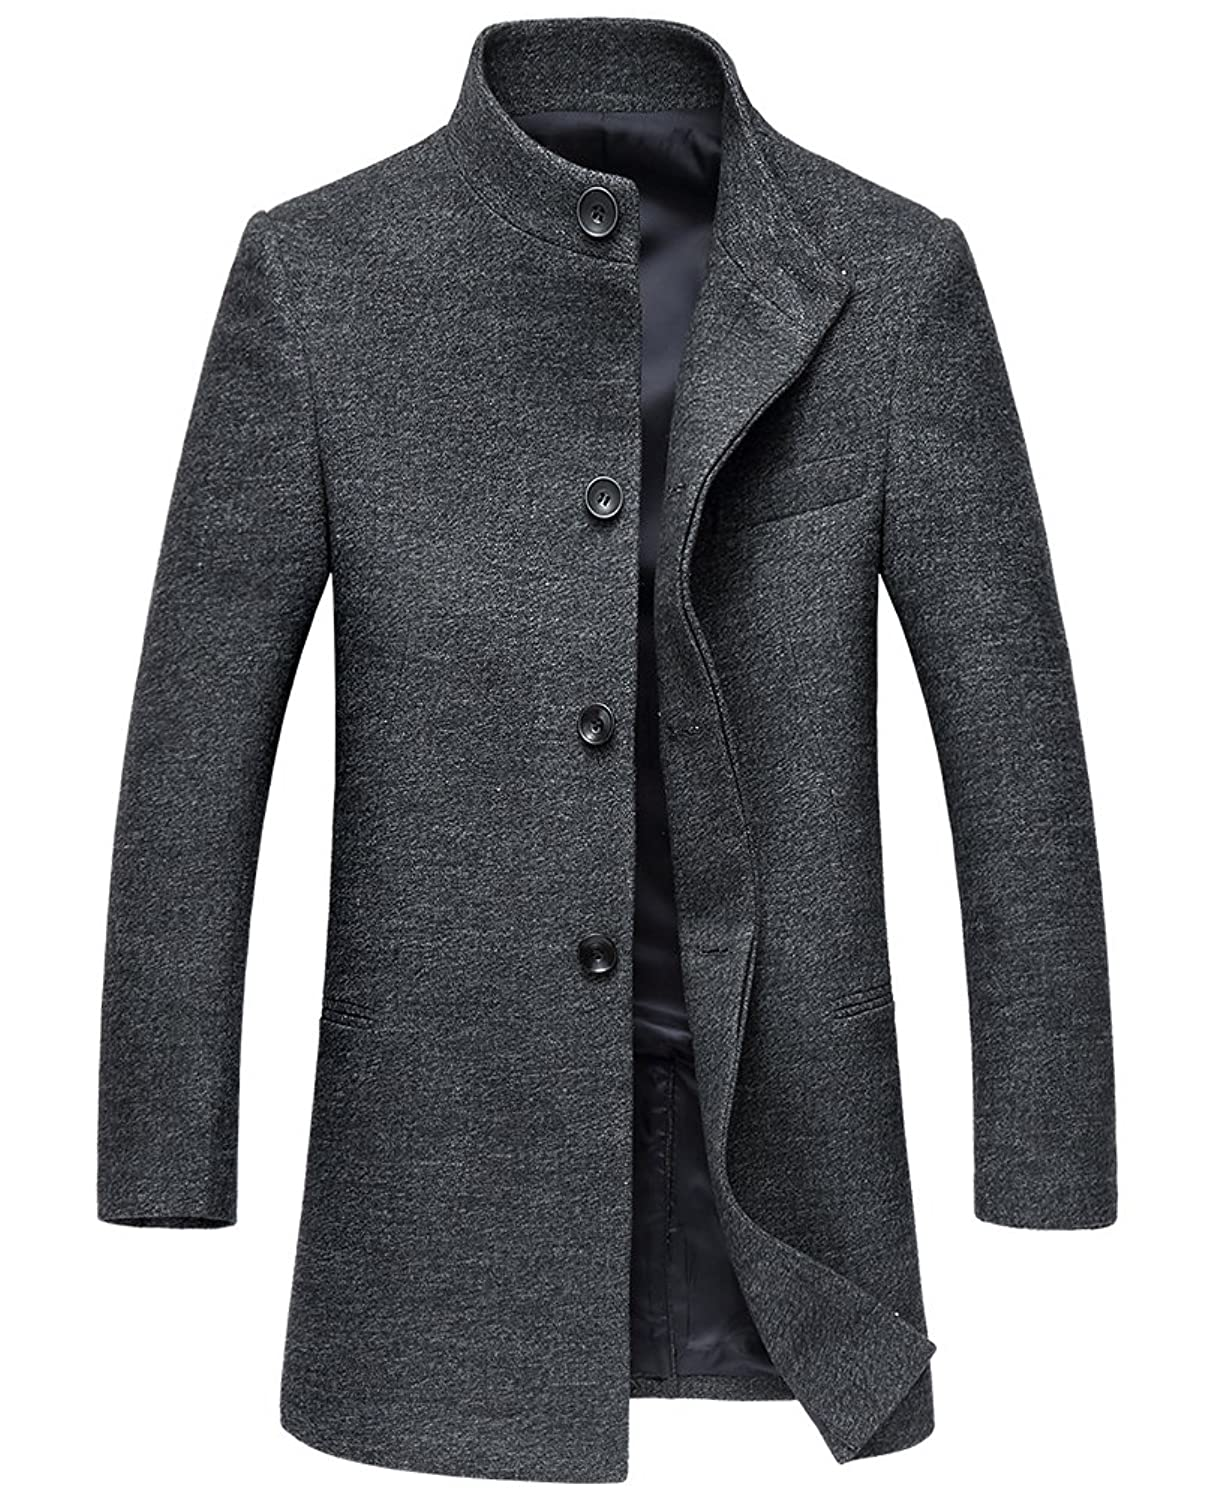 SK Studio Men's Winter Coat Long Jacket Single Breasted Overcoat